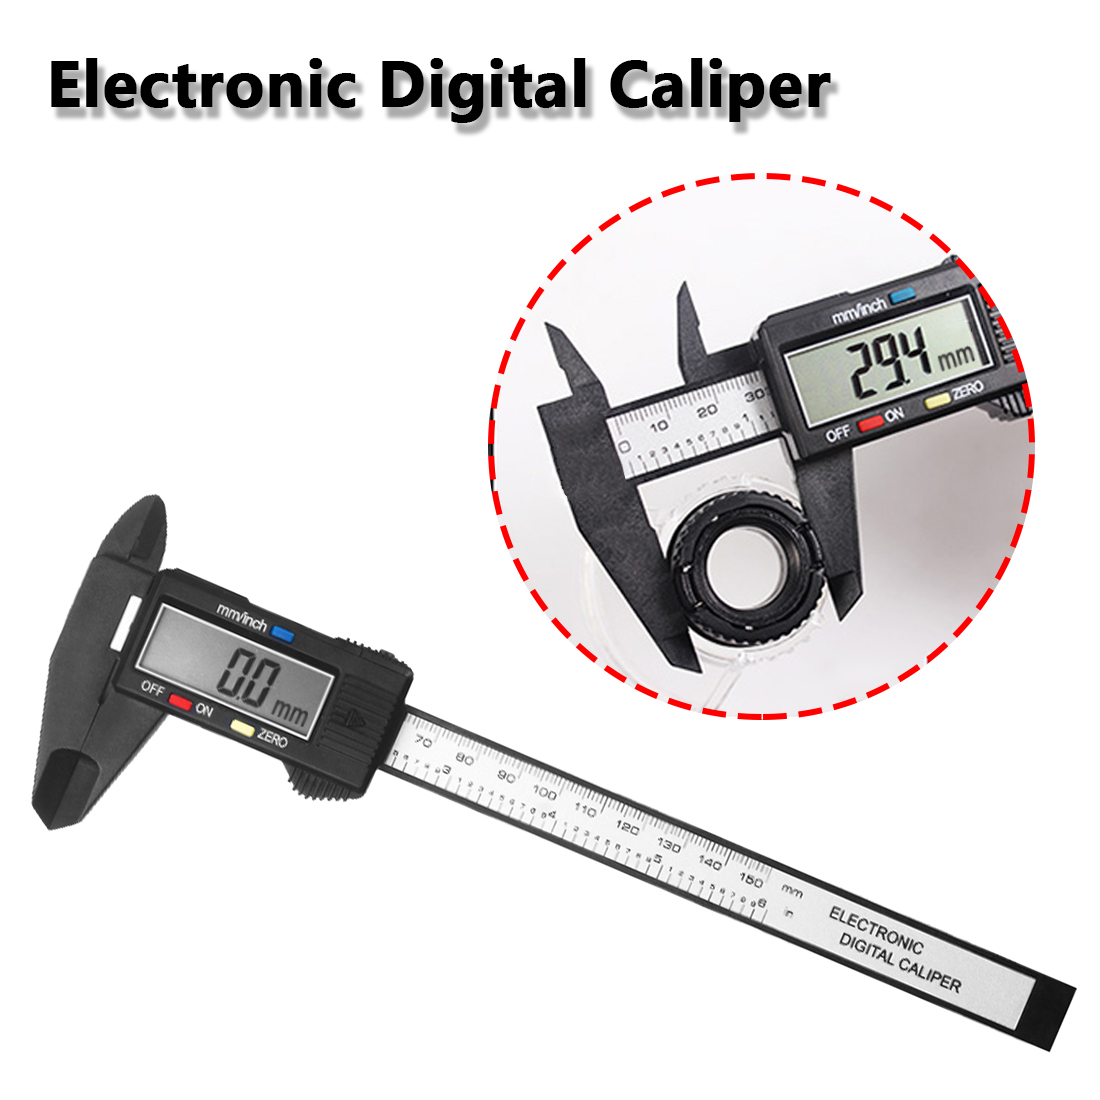 Carbon Fiber LCD Digital Electronic Vernier Caliper Gauge Micrometer Measuring Tool Ruler Digital Calipers 150mm 6inch 150mm 6inch lcd electronic digital vernier caliper gauge mm inch micrometer paquimetro measuring tools free shipping